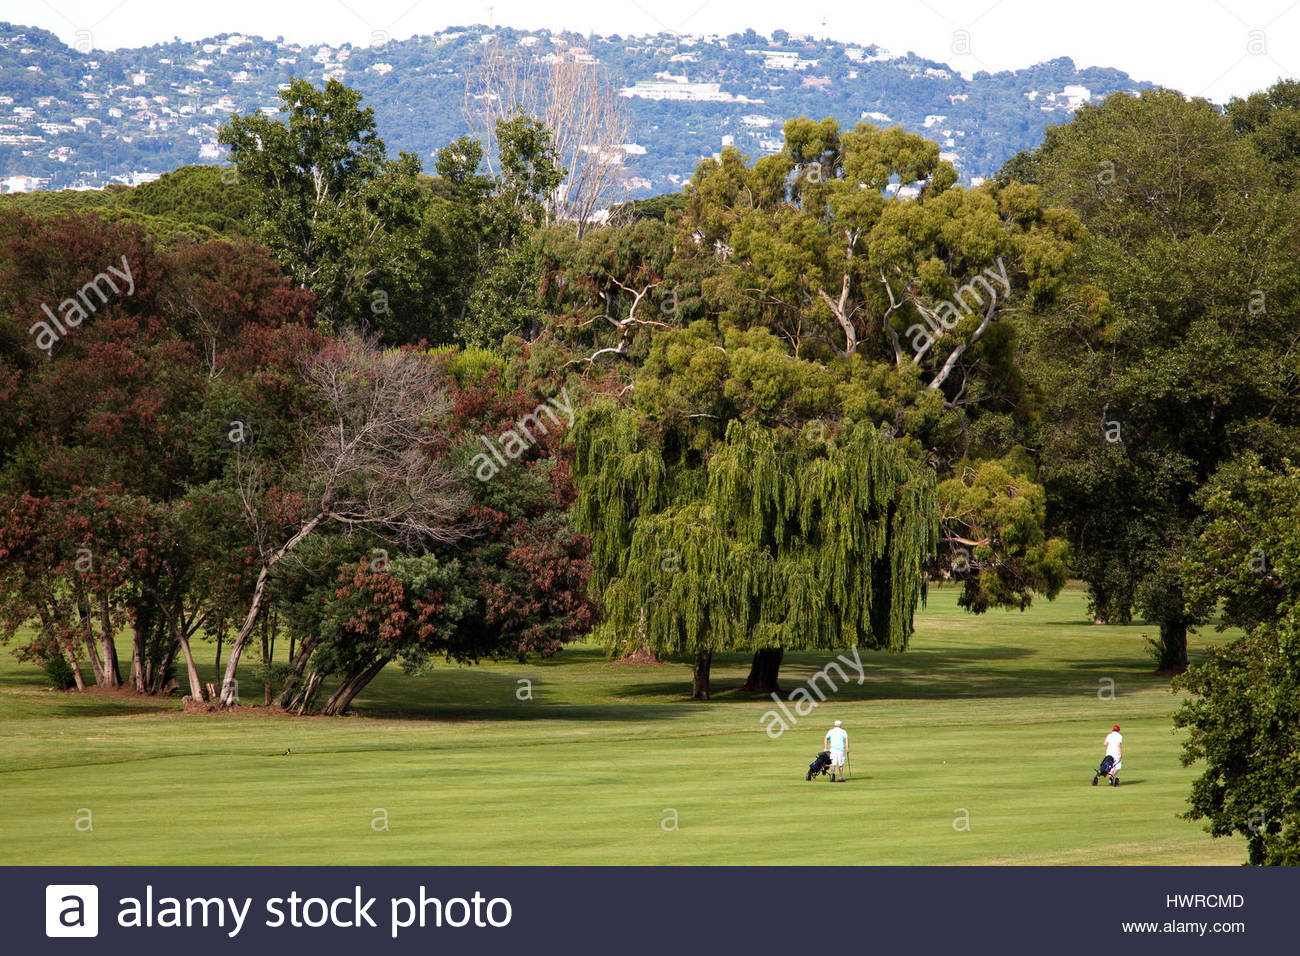 Two golfers pulling trolleys behind them after playing their shots on a golf course outside Cannes in the south - Stock Image